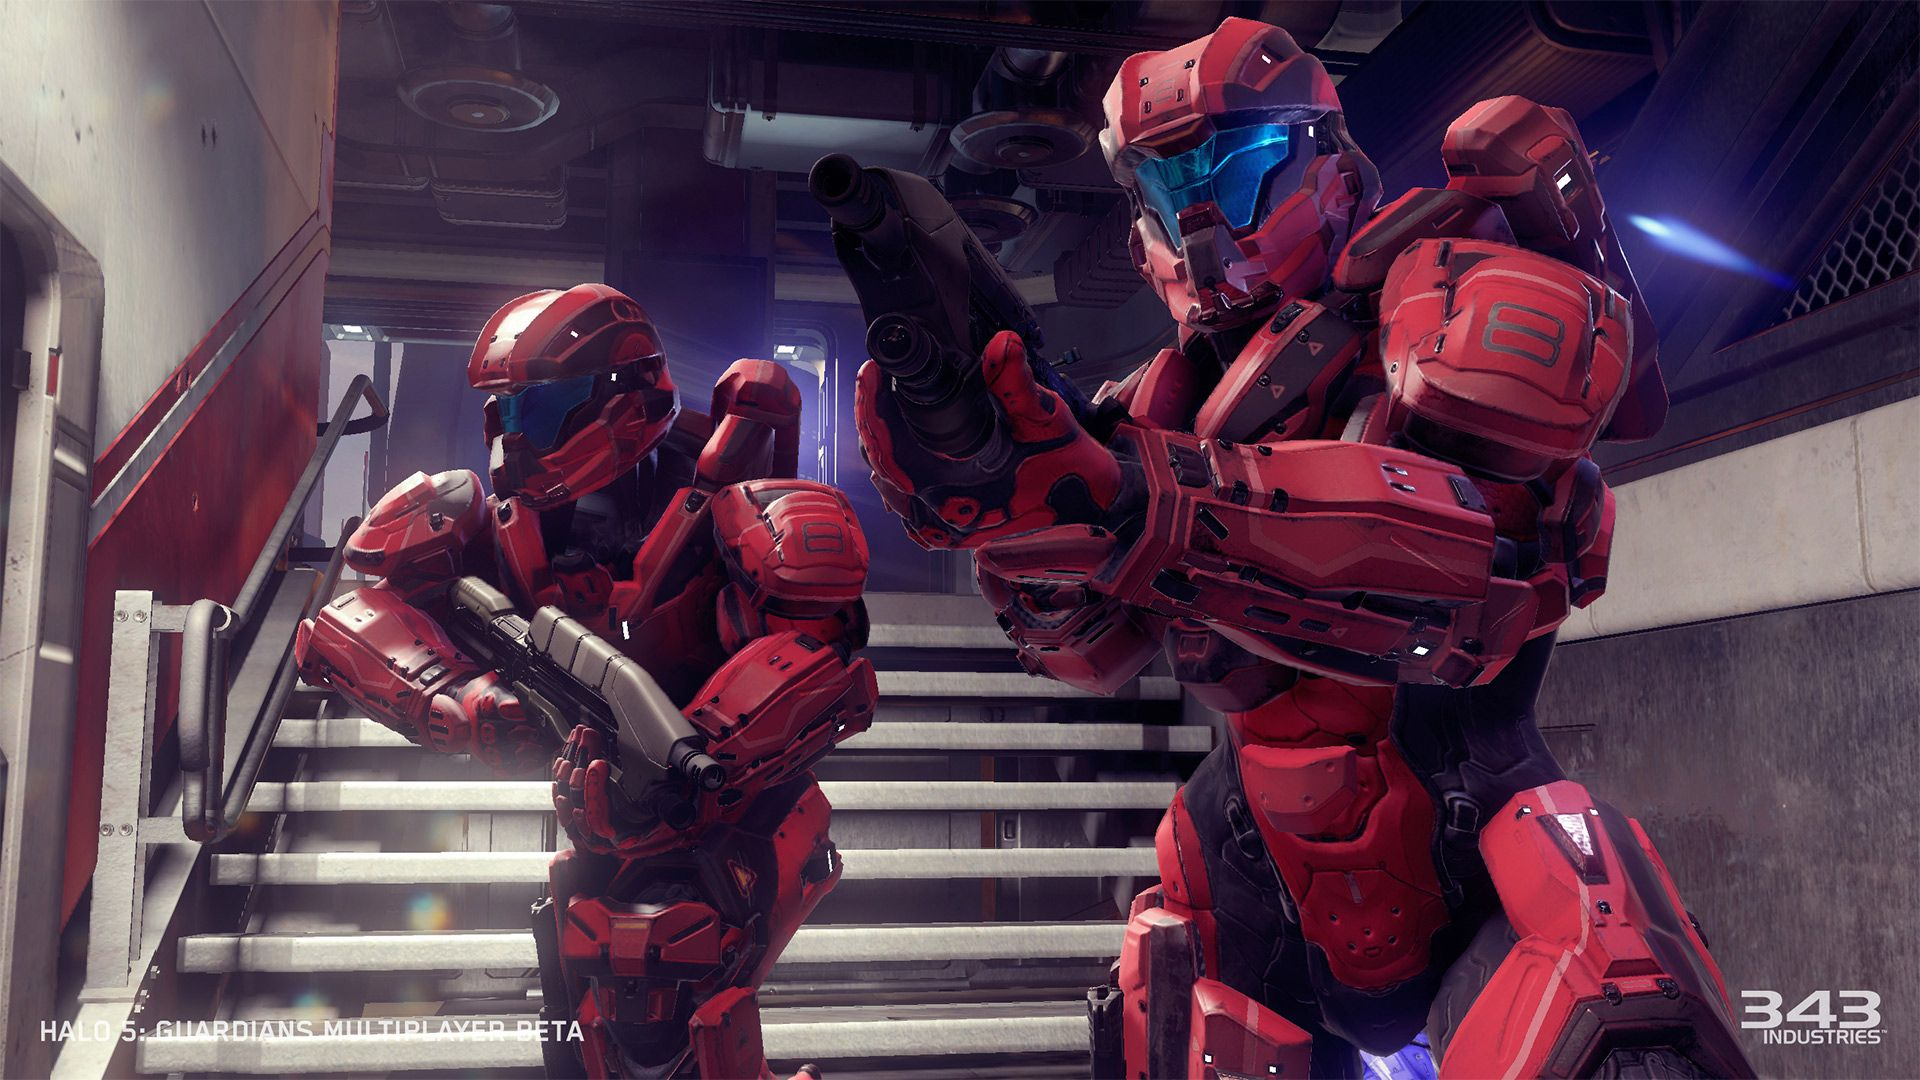 Halo 5 guardians games halo official site halo 5